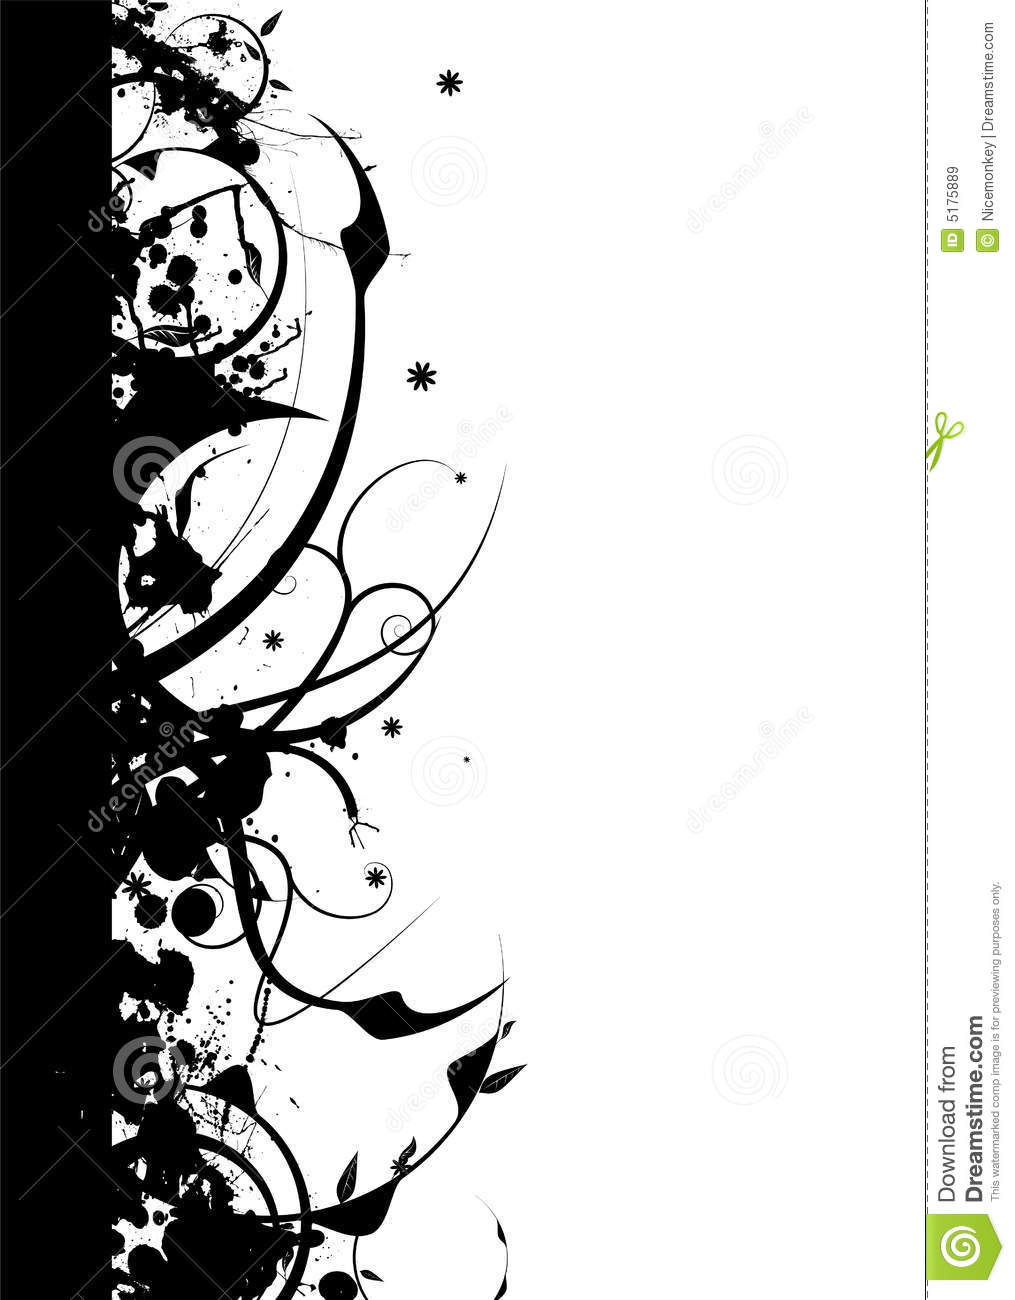 Gothic Nature Border Stock Vector Illustration Of Silhouette